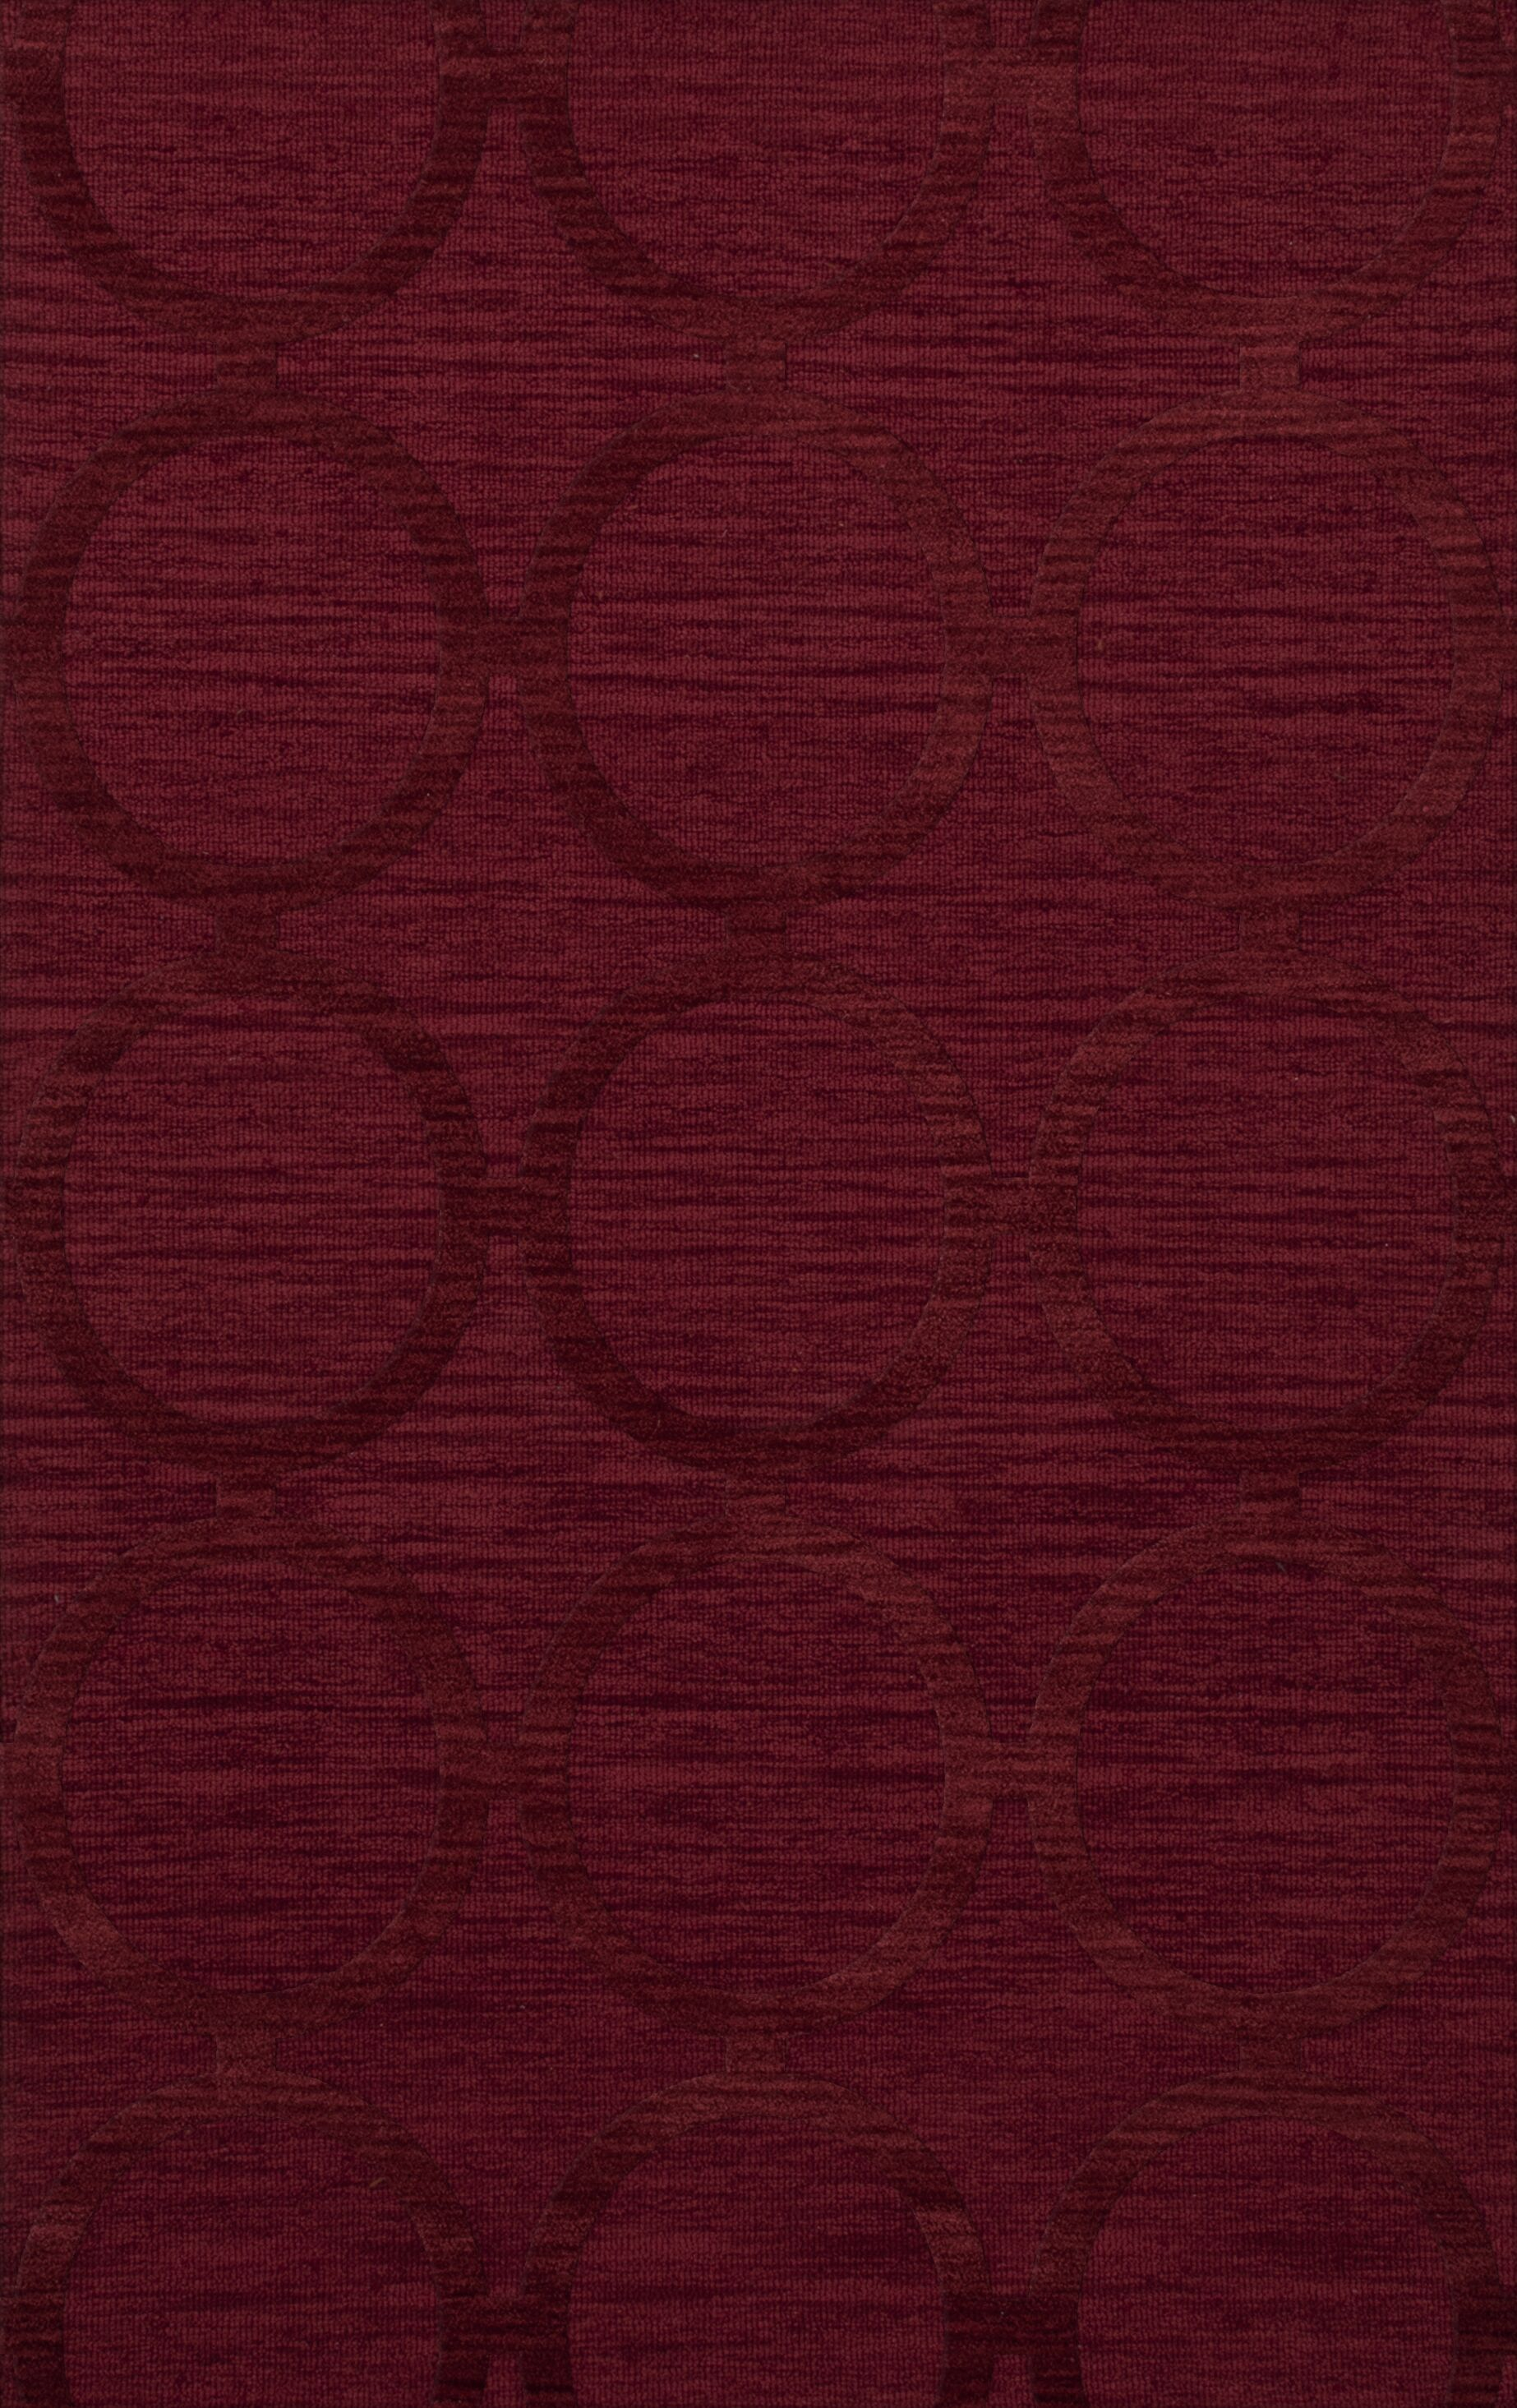 Dover Rich Red Area Rug Rug Size: Rectangle 4' x 6'